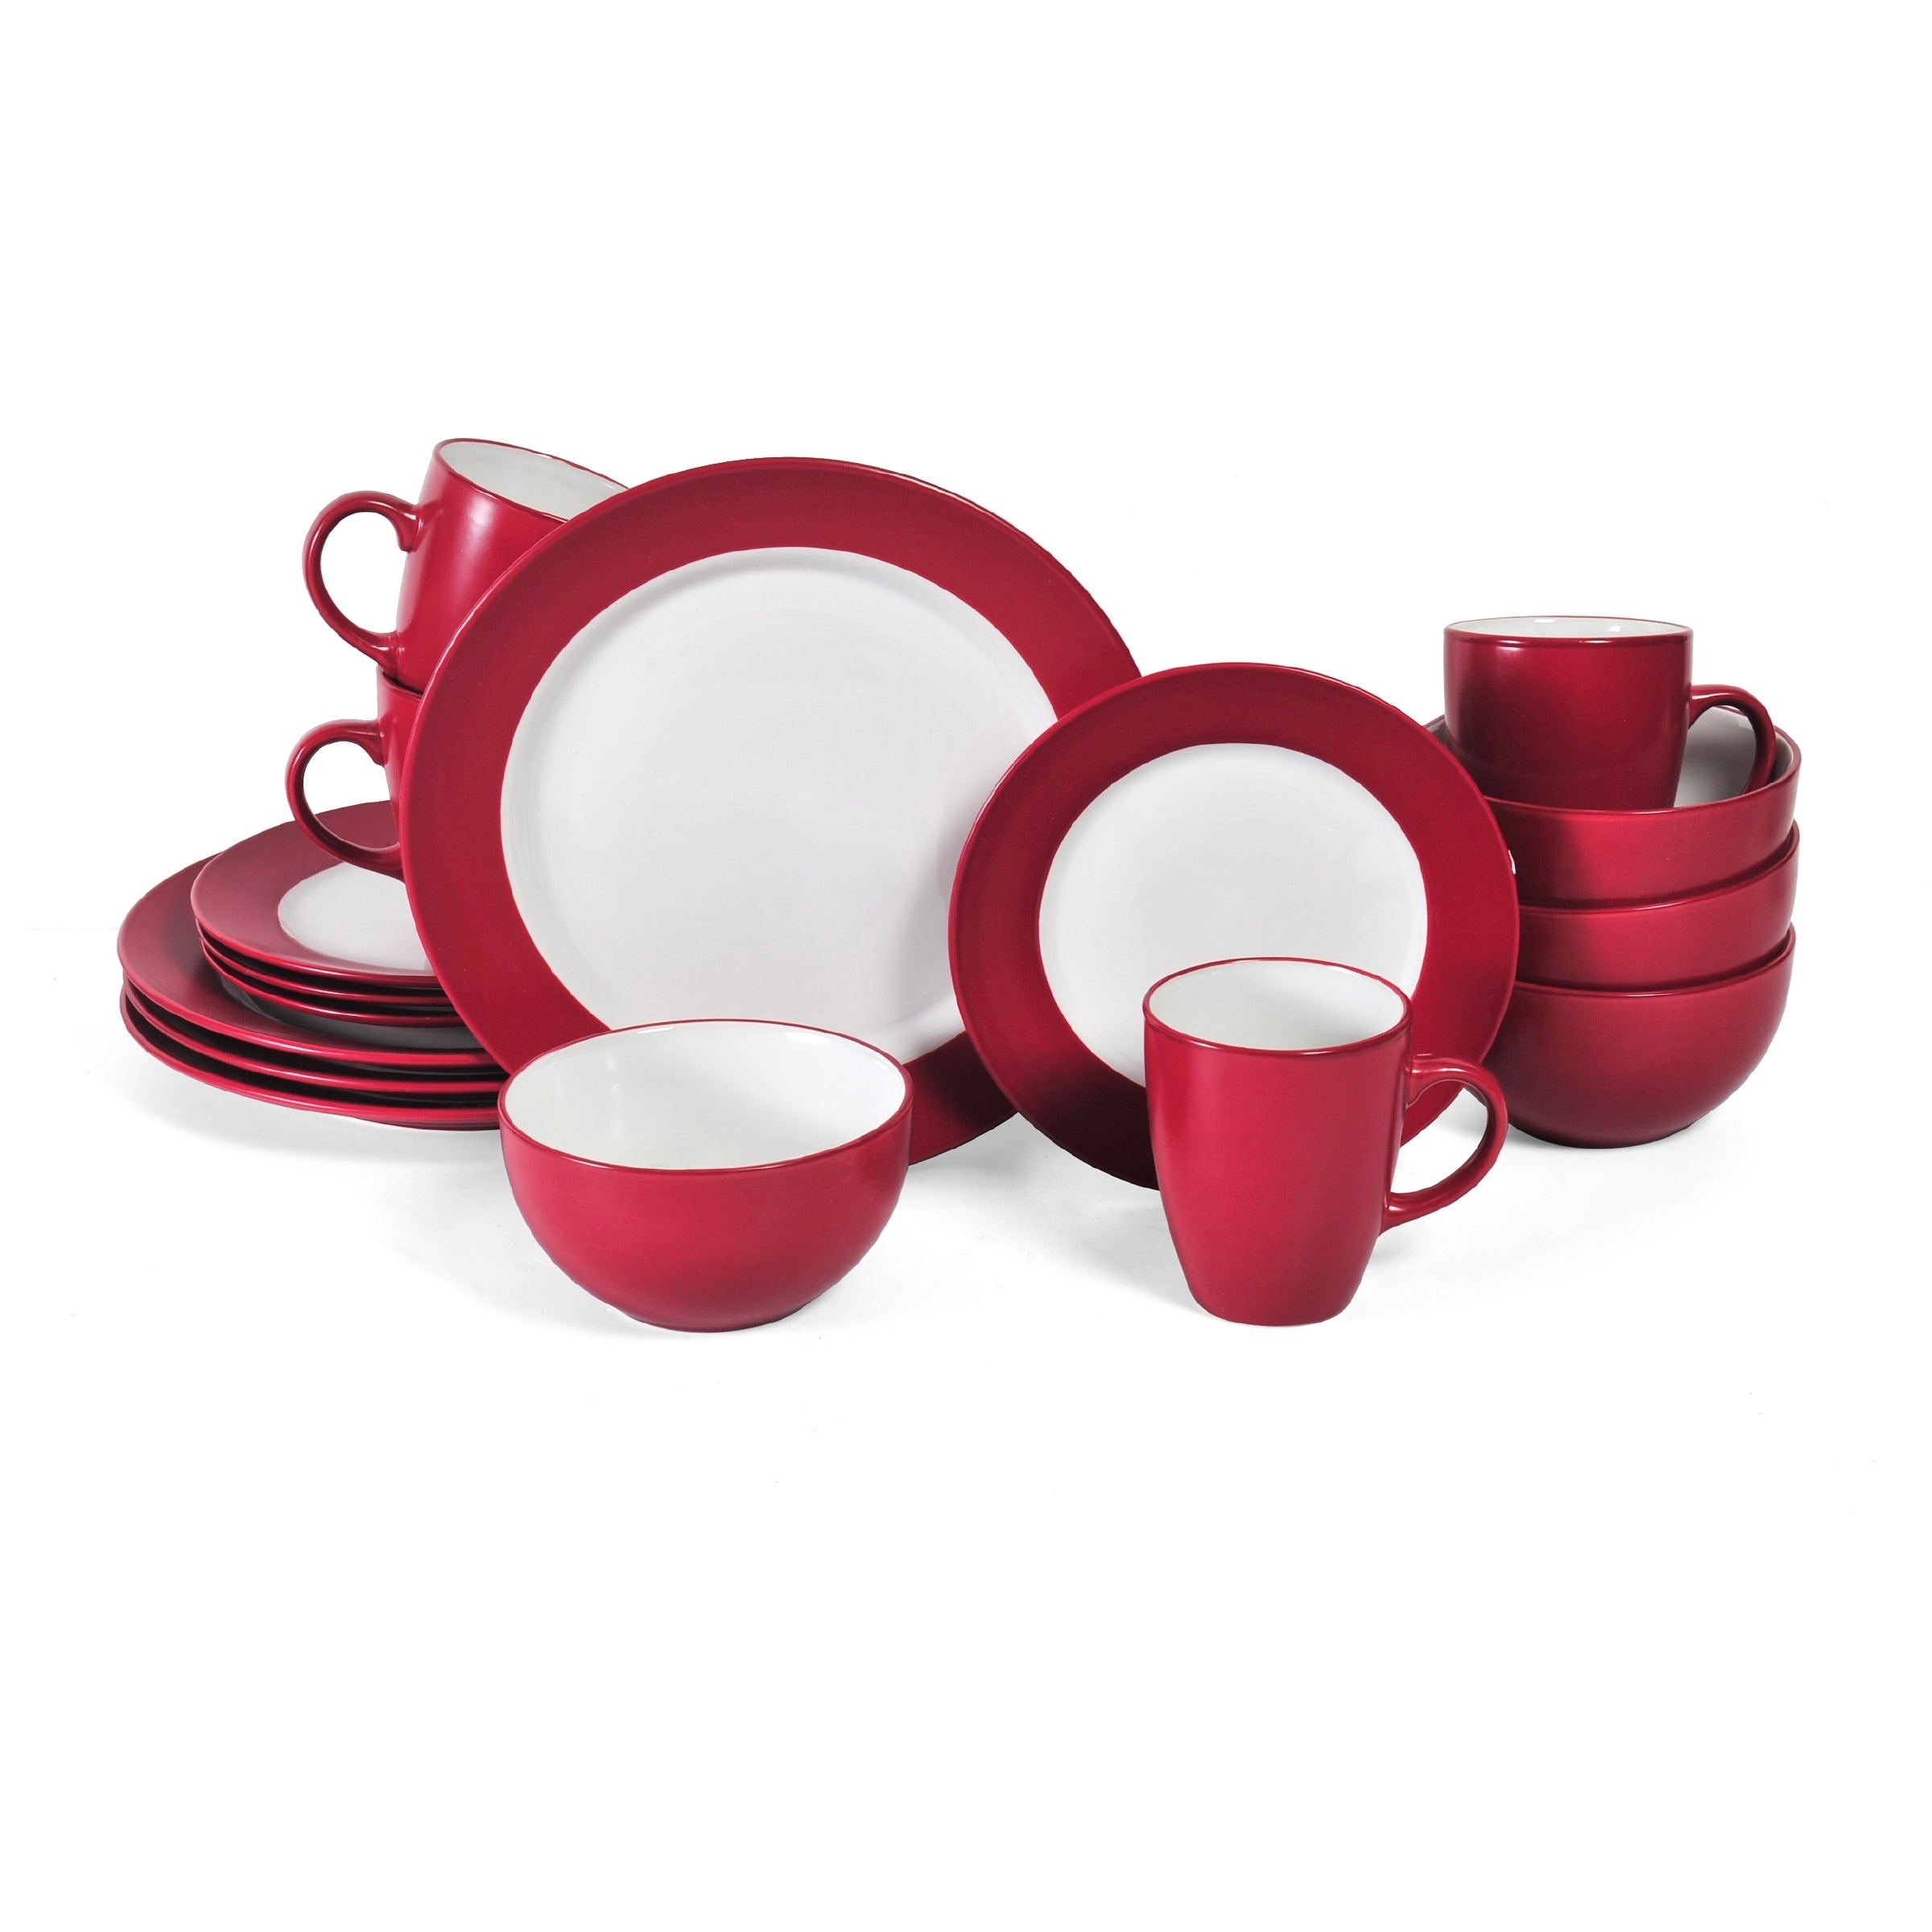 Shop Pfaltzgaff Harmony 16-piece Red Dinnerware Set - Free Shipping Today Overstock.com 9588308